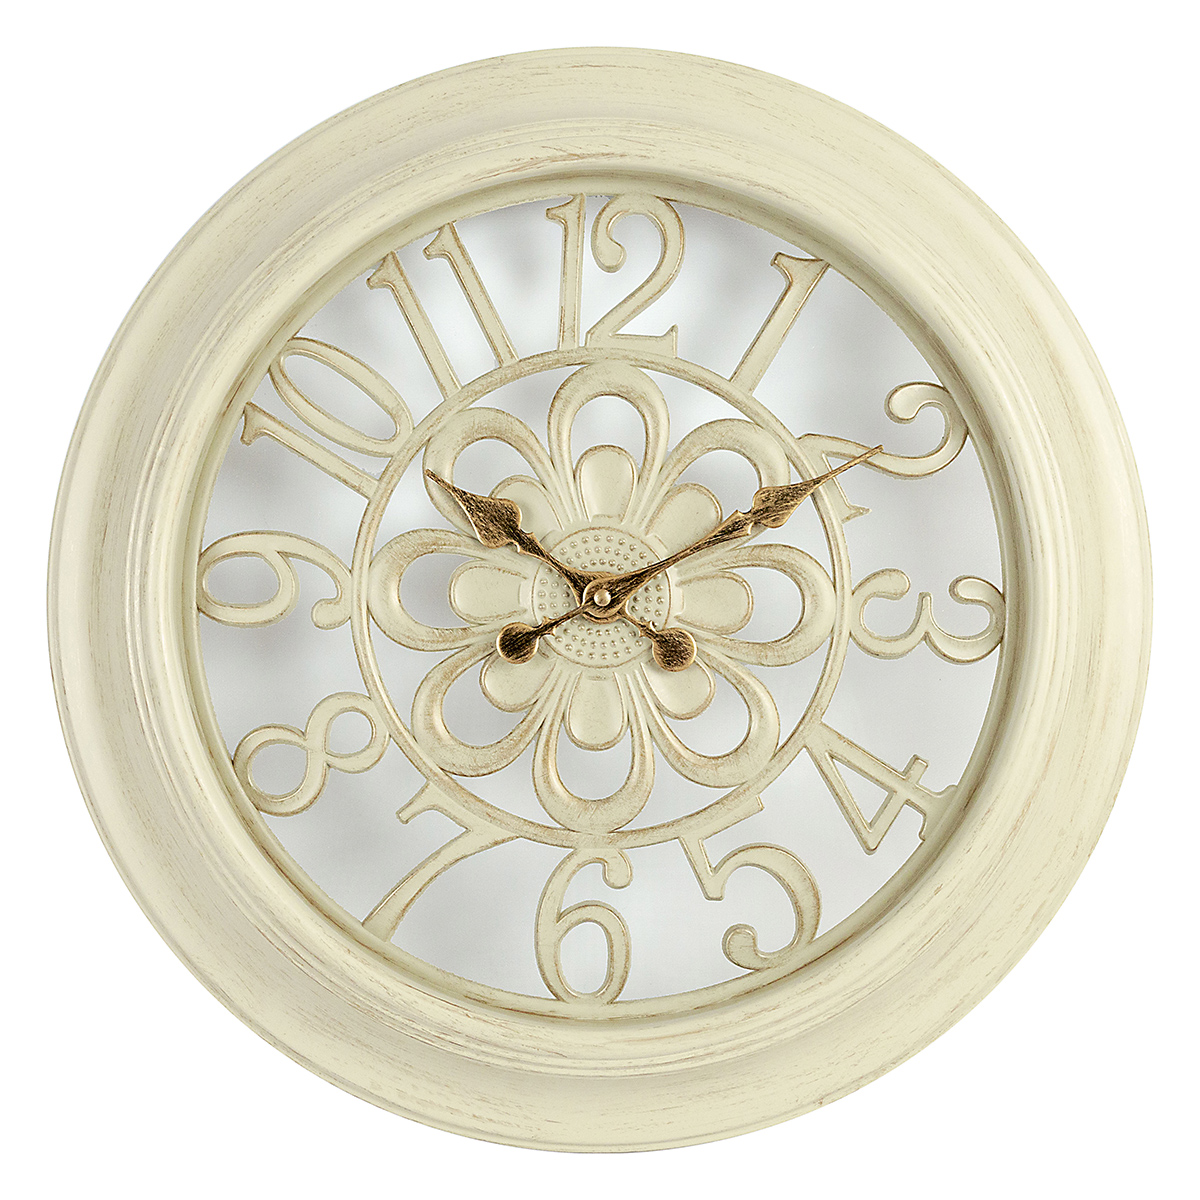 18 inch Decorative Wall Clock, Antique White